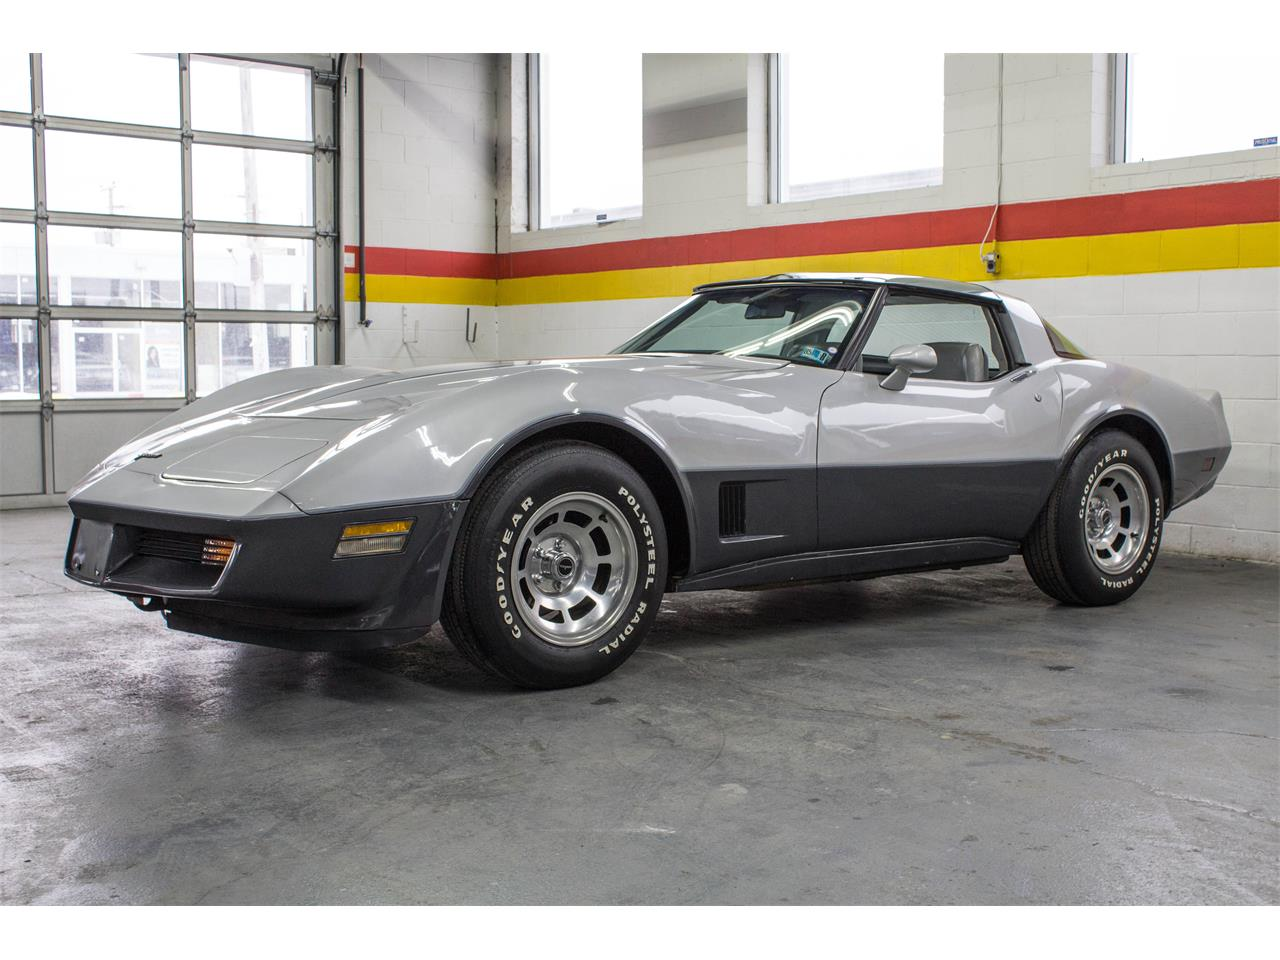 Large Picture of 1981 Chevrolet Corvette located in Montreal Quebec - $26,900.00 - KKXW